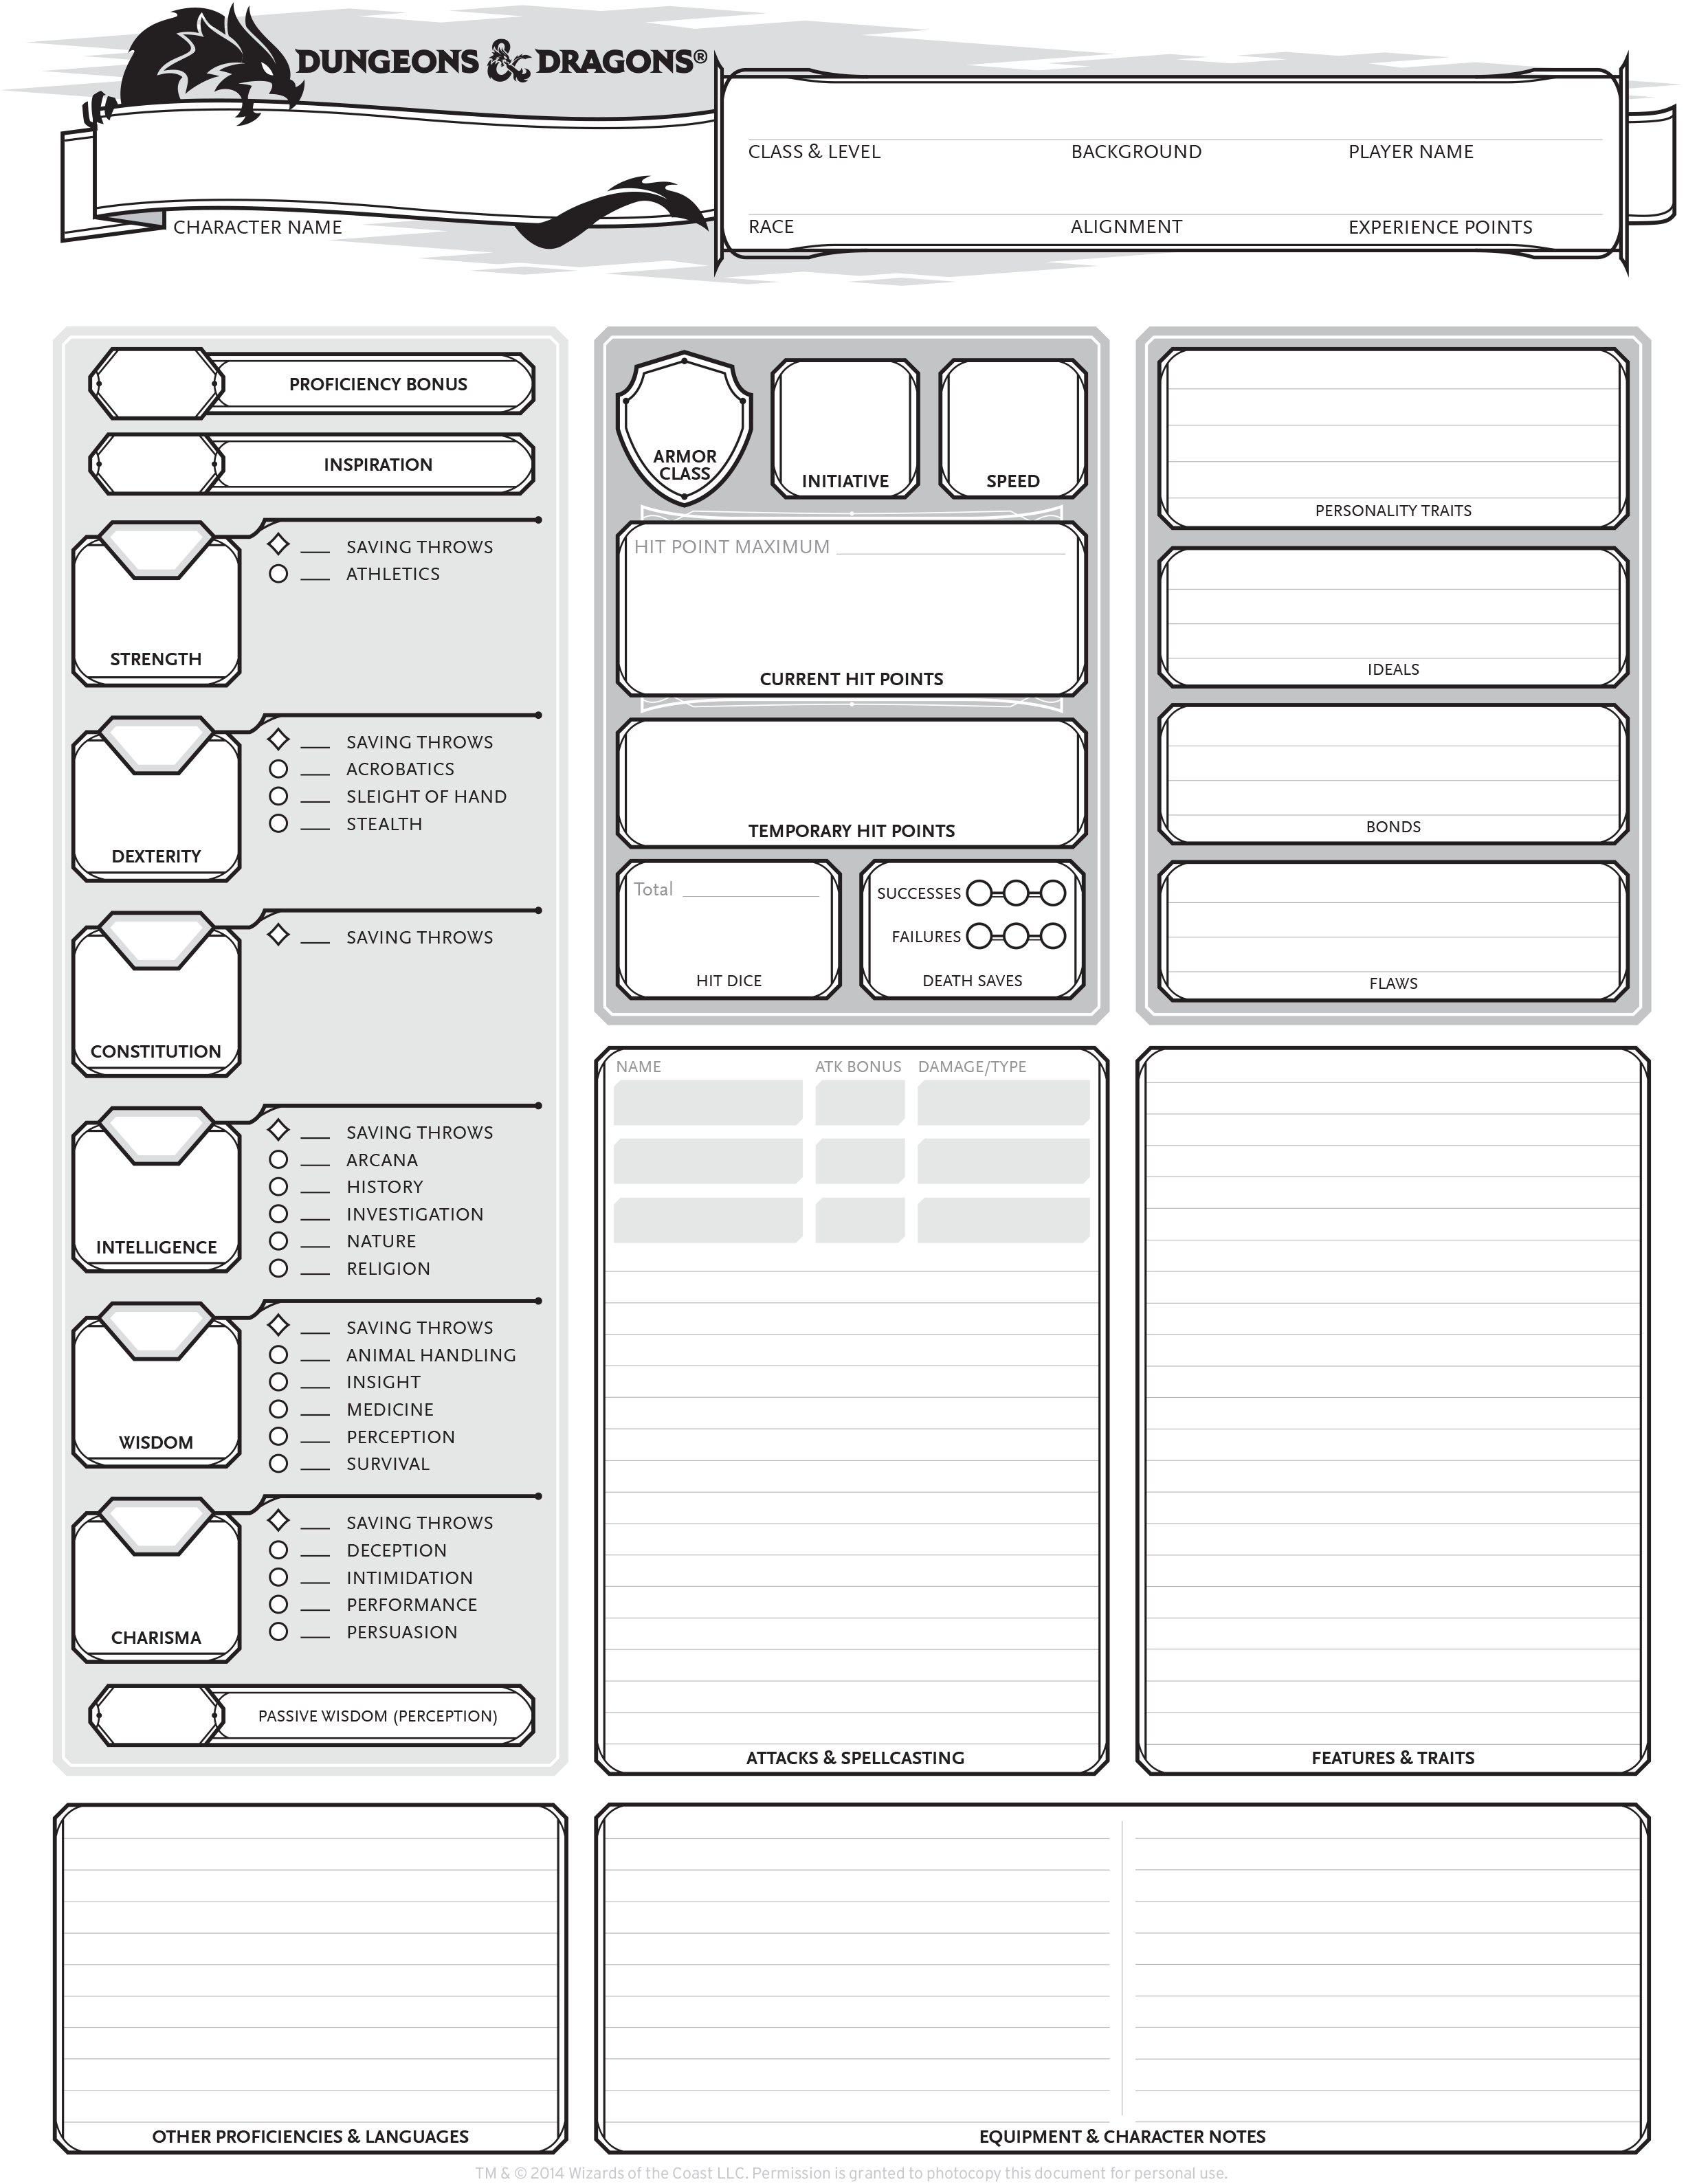 image relating to Dnd 5e Printable Character Sheet named Planning a Uncomplicated Identity within just Dungeons and Dragons, 5th Variation